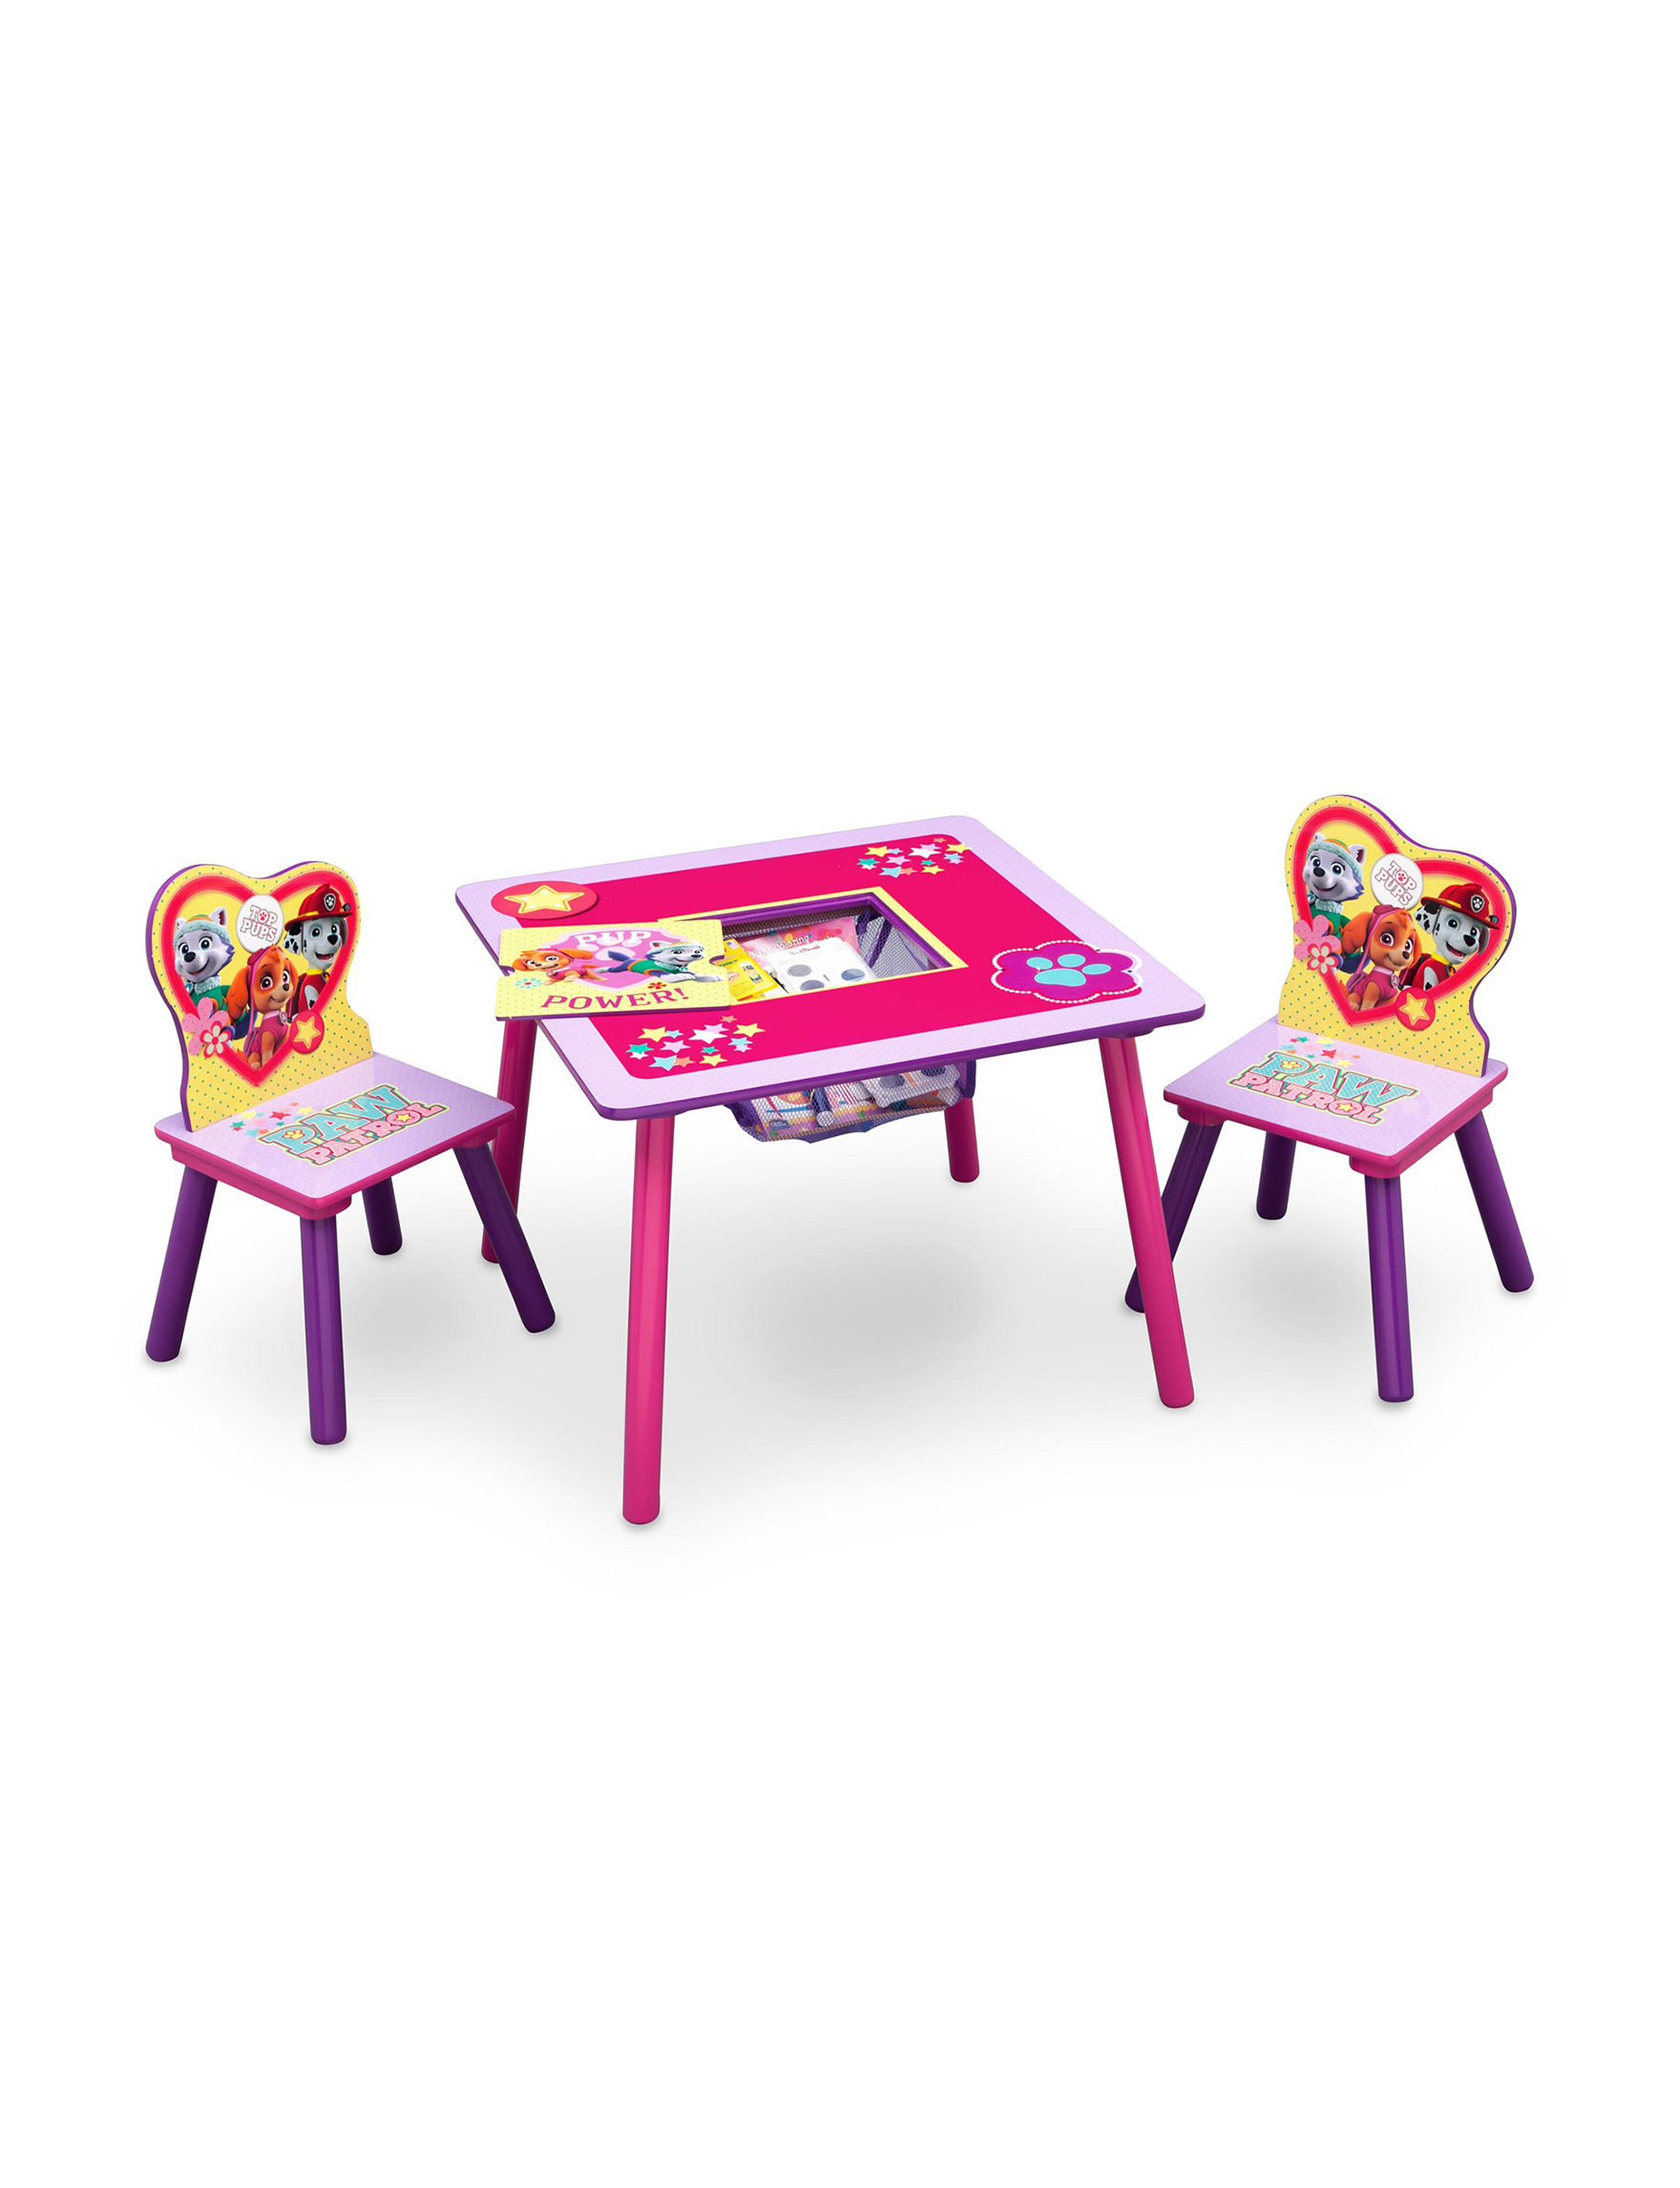 Nickelodeon Pink Table & Chair Sets